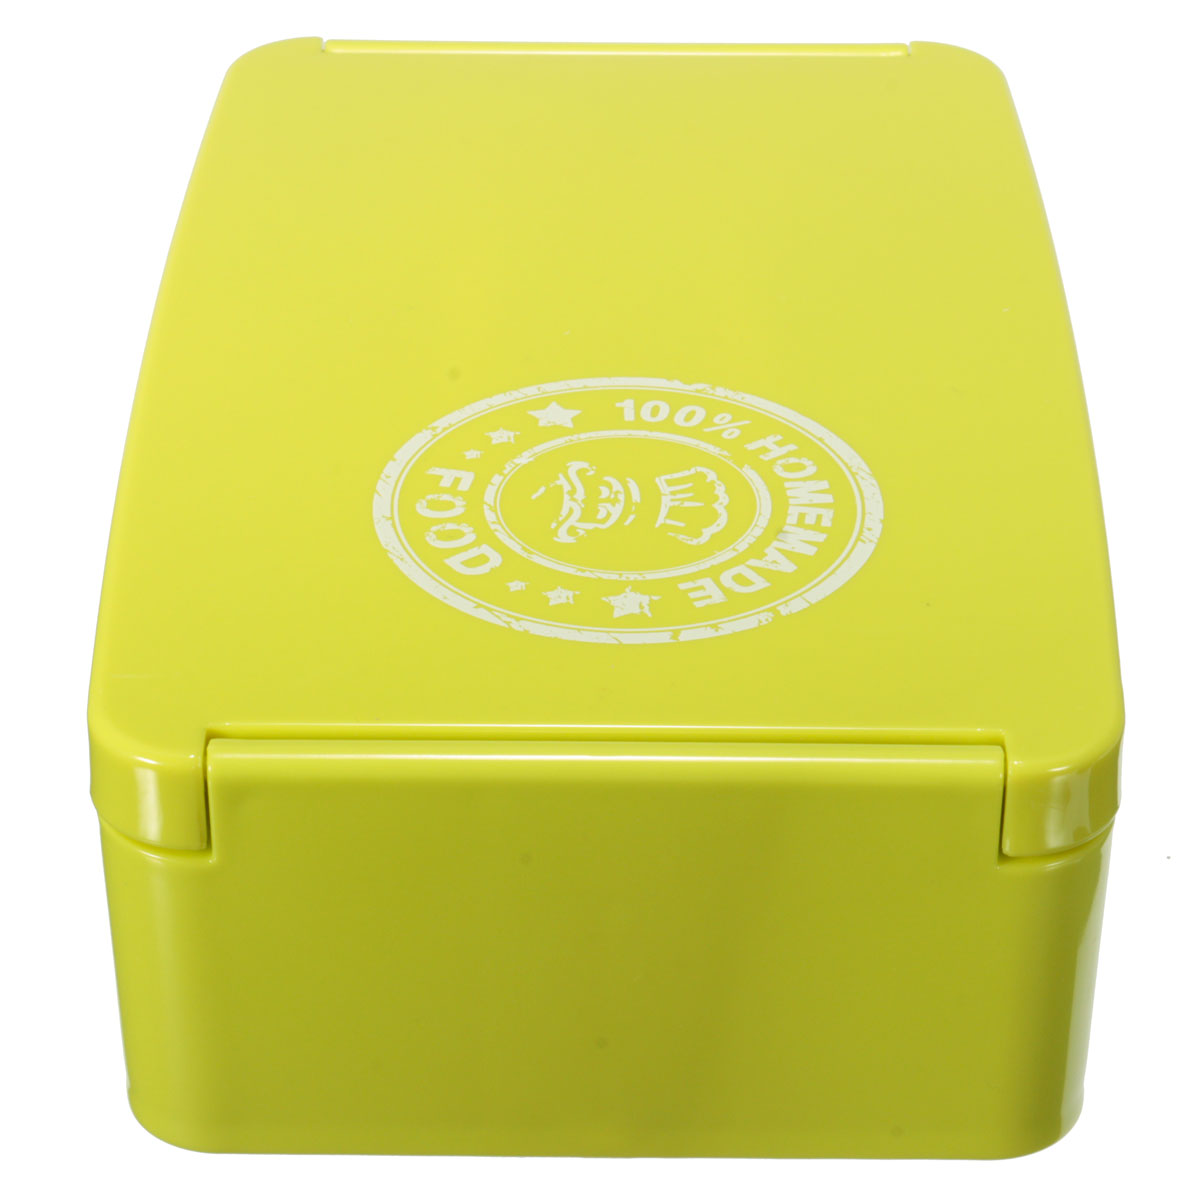 portable microwave oven bento lunch box picnic food container with fork spoon green intl. Black Bedroom Furniture Sets. Home Design Ideas